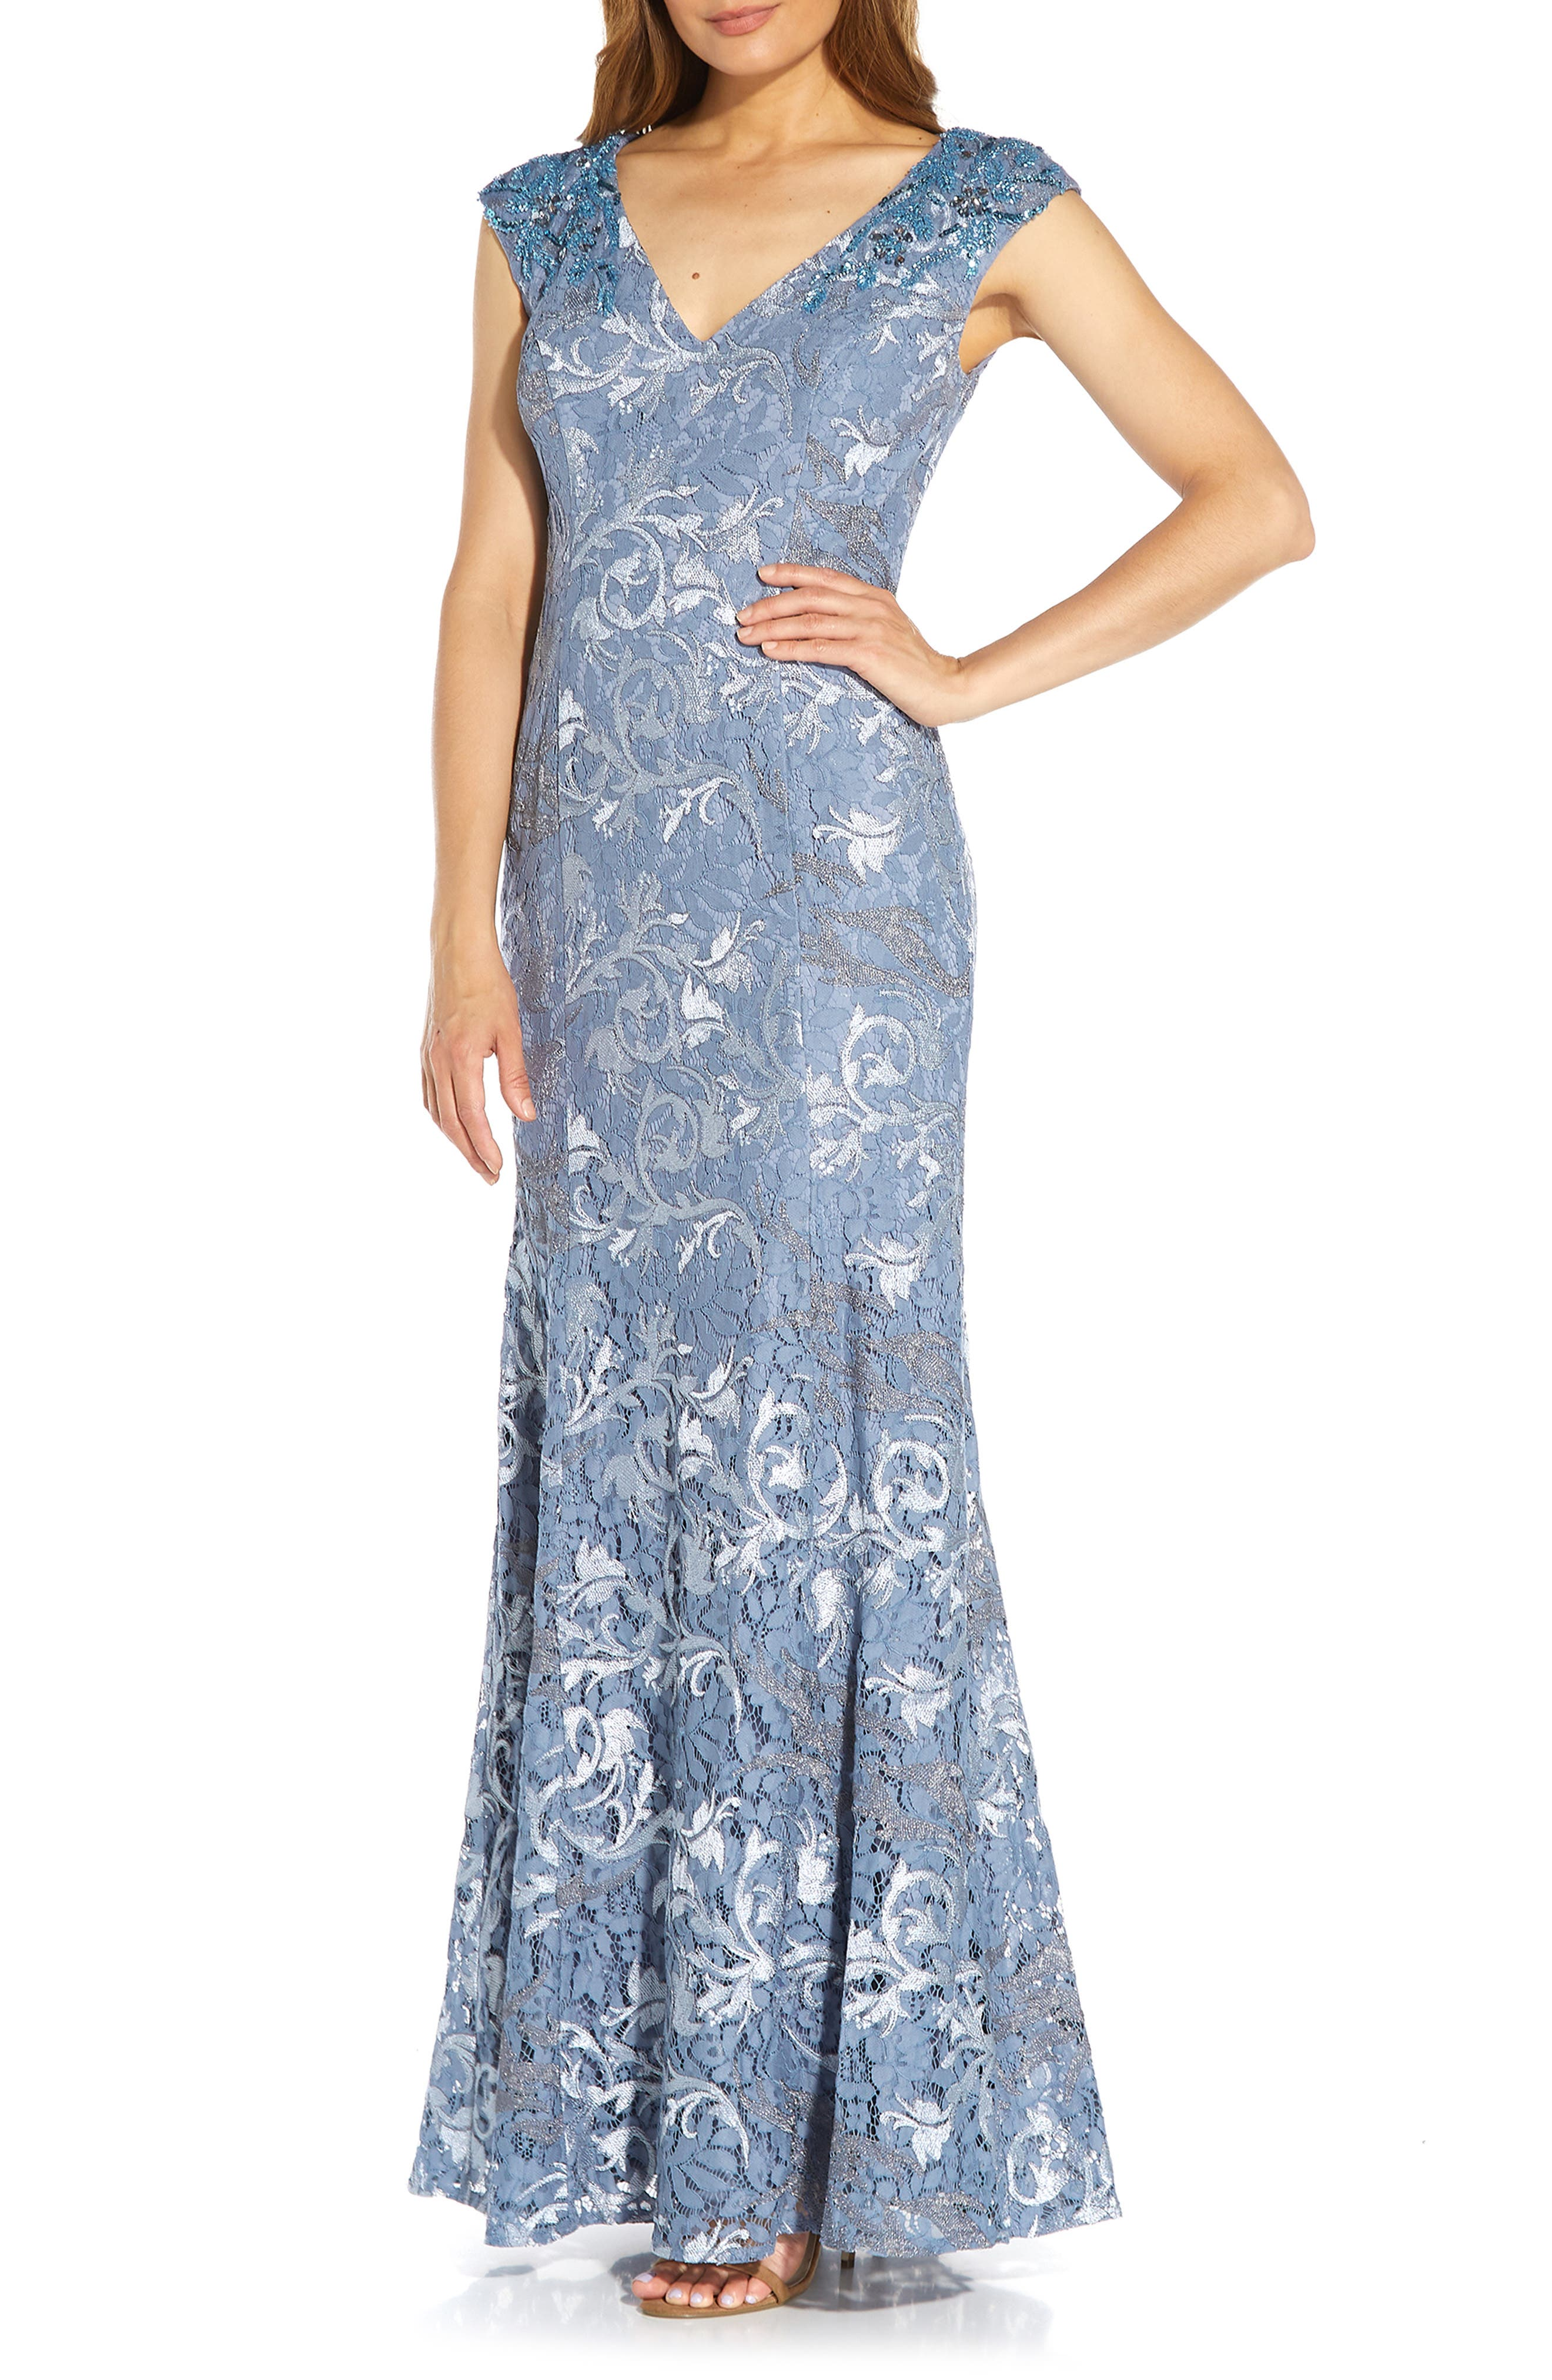 1930s Evening Dresses | Old Hollywood Silver Screen Dresses Womens Adrianna Papell Embroidered Lace Trumpet Gown Size 16 - Blue $349.00 AT vintagedancer.com